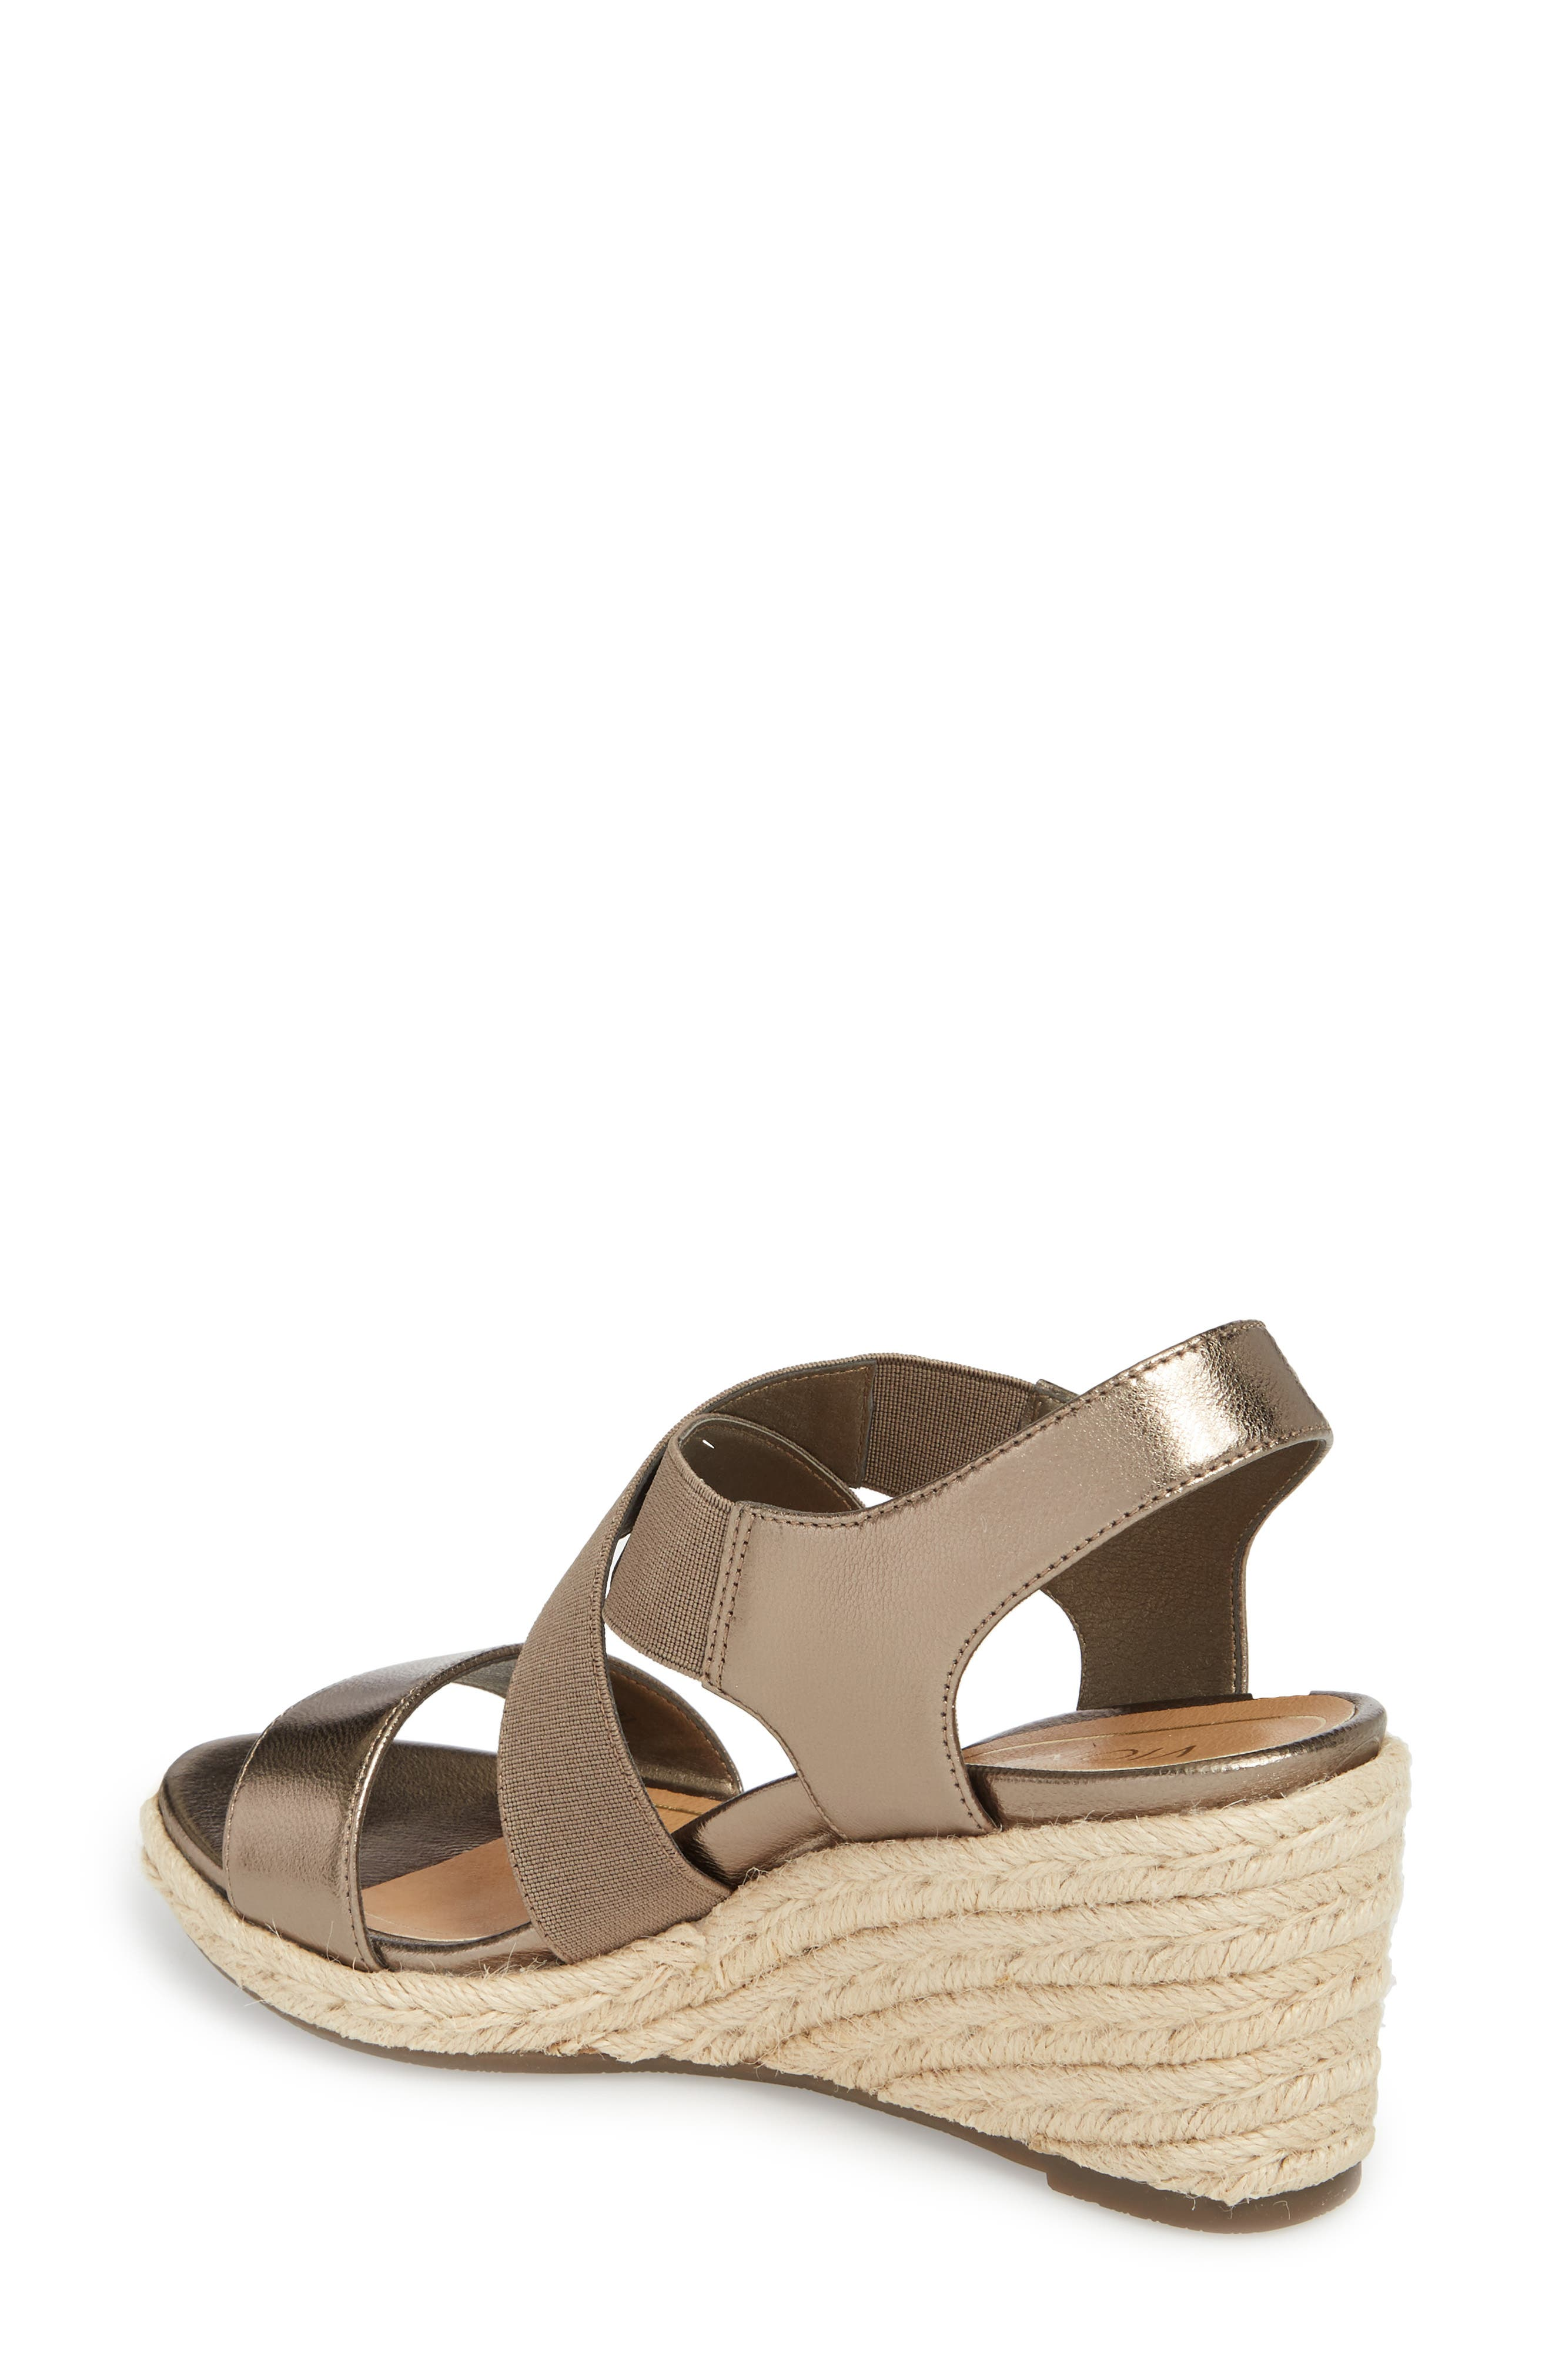 Ainsleigh Wedge Sandal,                             Alternate thumbnail 2, color,                             Dark Taupe Leather